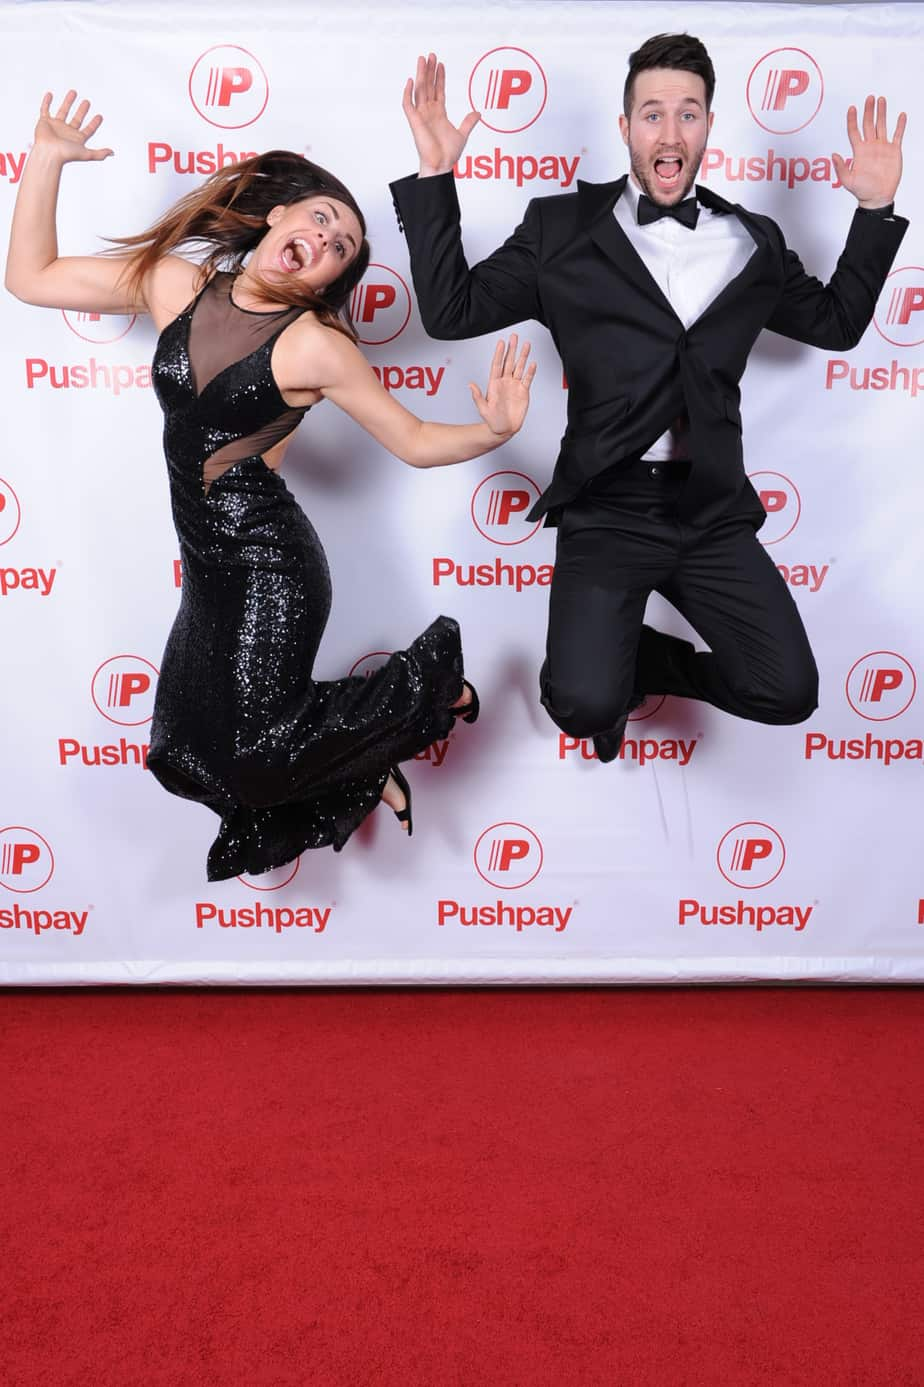 two peole jumping on the red carpet